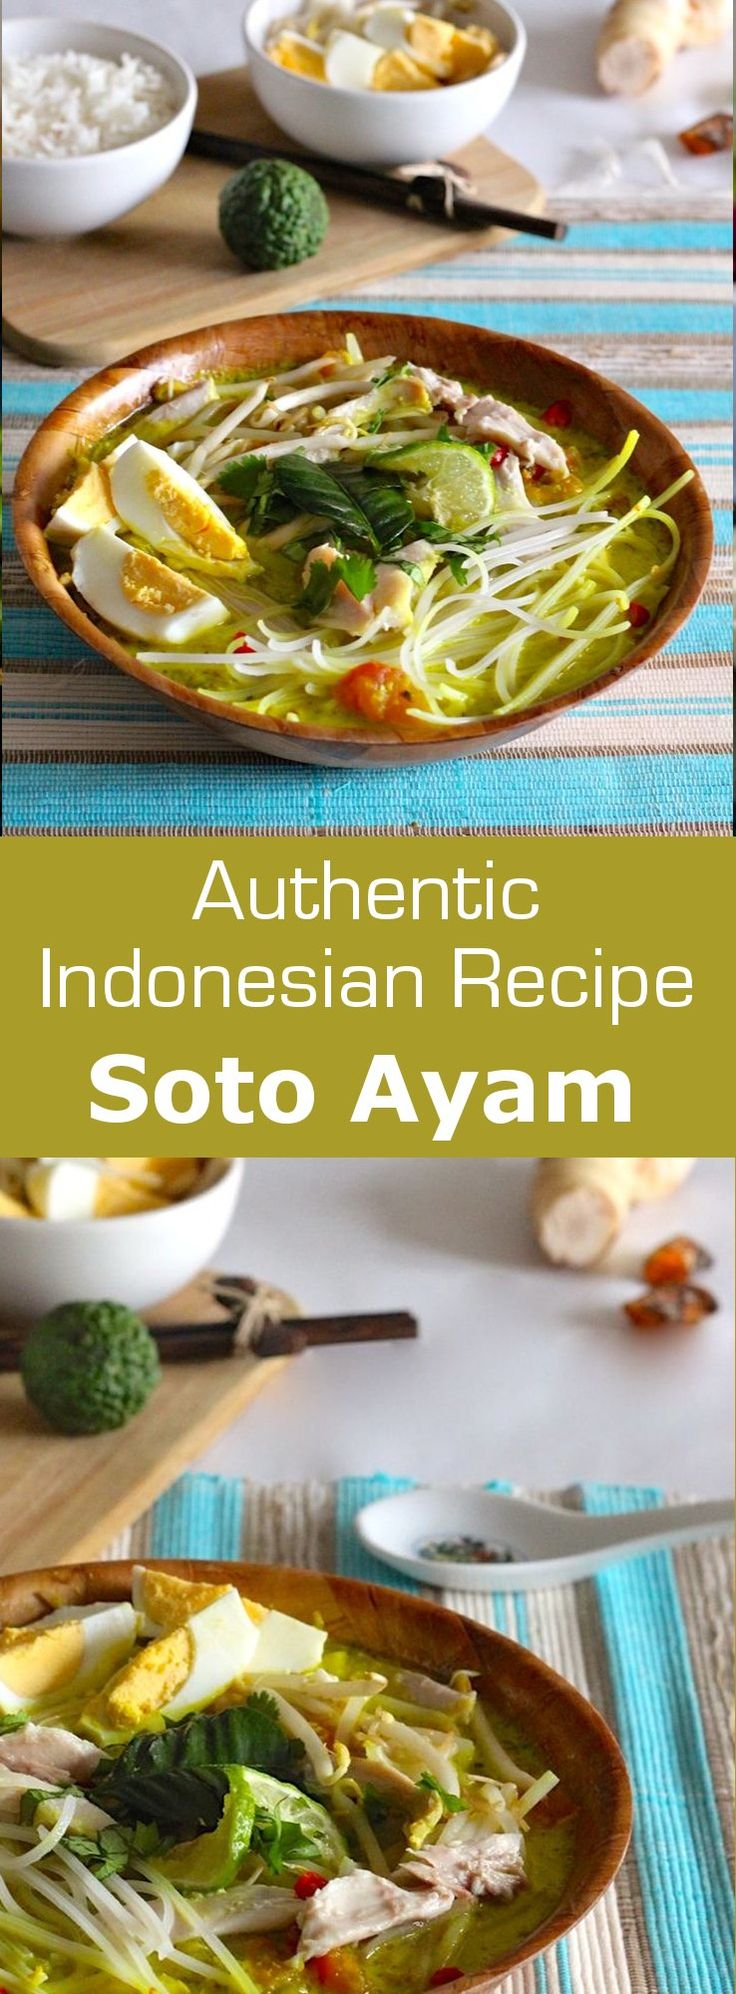 Best 25 indonesian food ideas on pinterest indonesian for Authentic indonesian cuisine